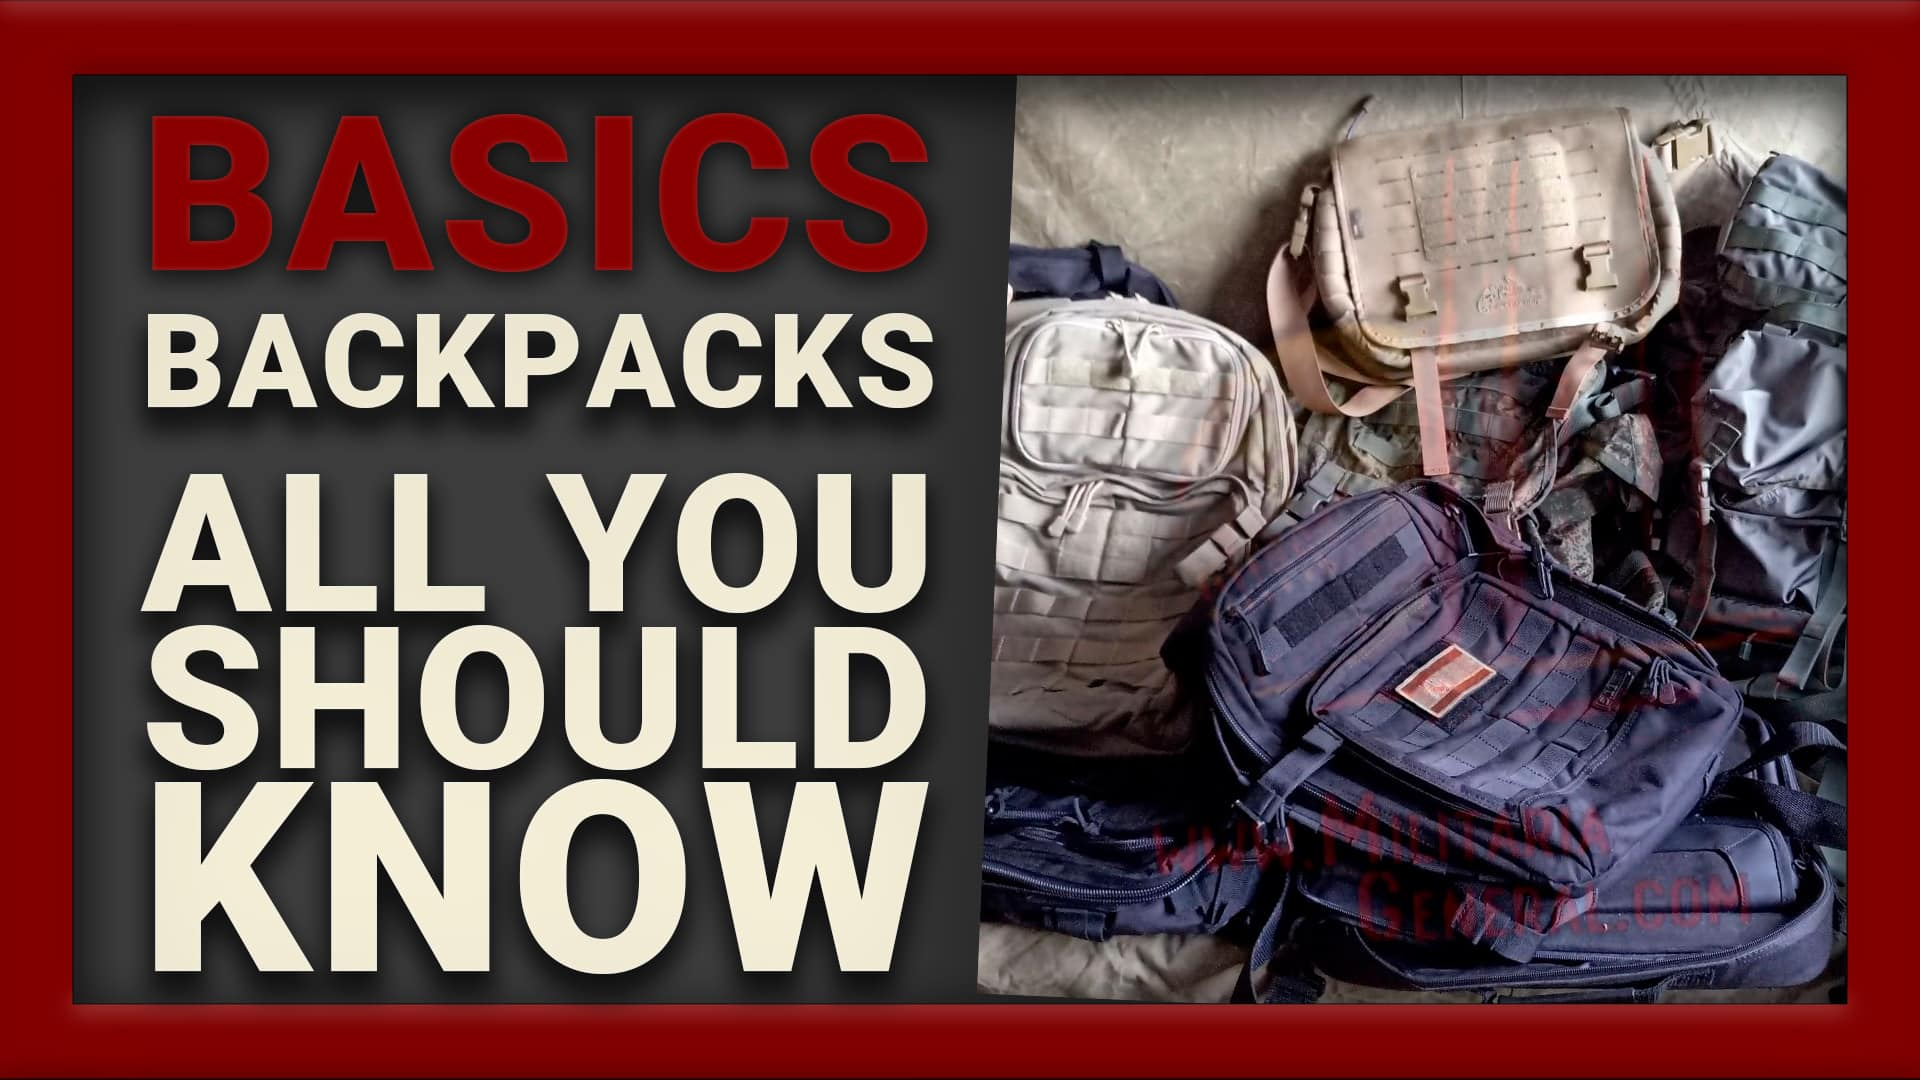 BASICS_Backpacks_All_You_Should_Know